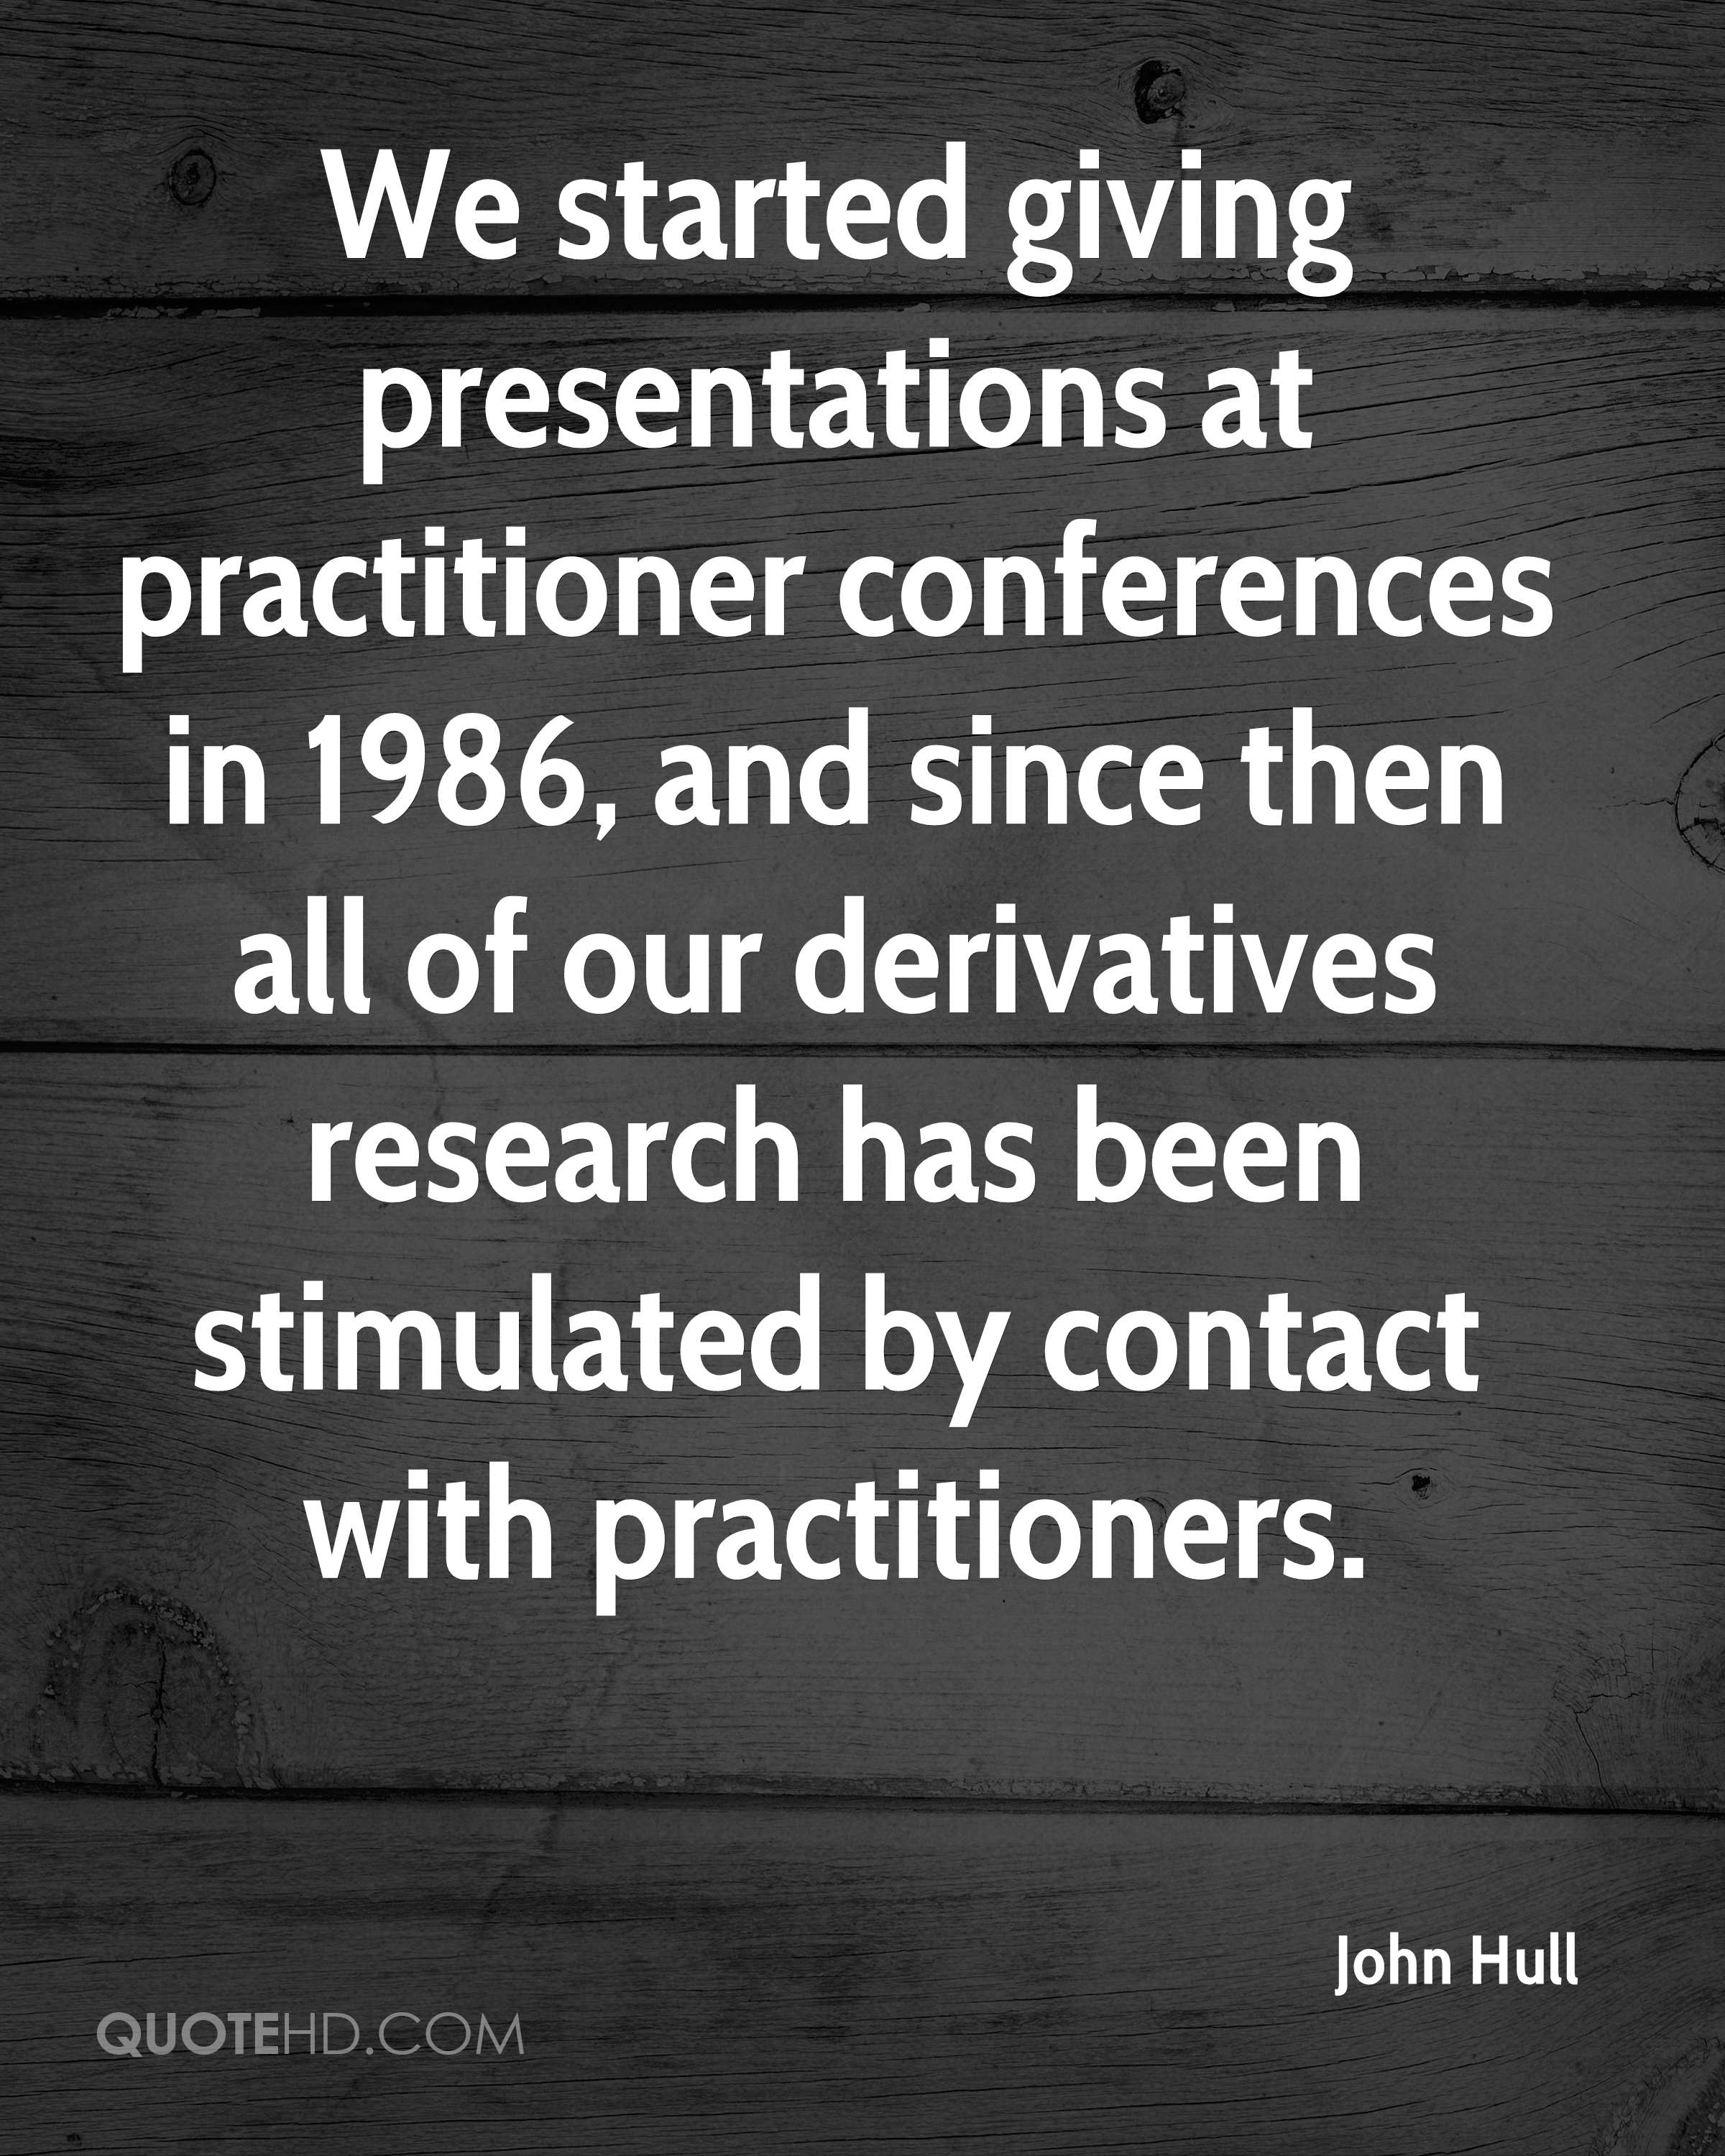 We started giving presentations at practitioner conferences in 1986, and since then all of our derivatives research has been stimulated by contact with practitioners.